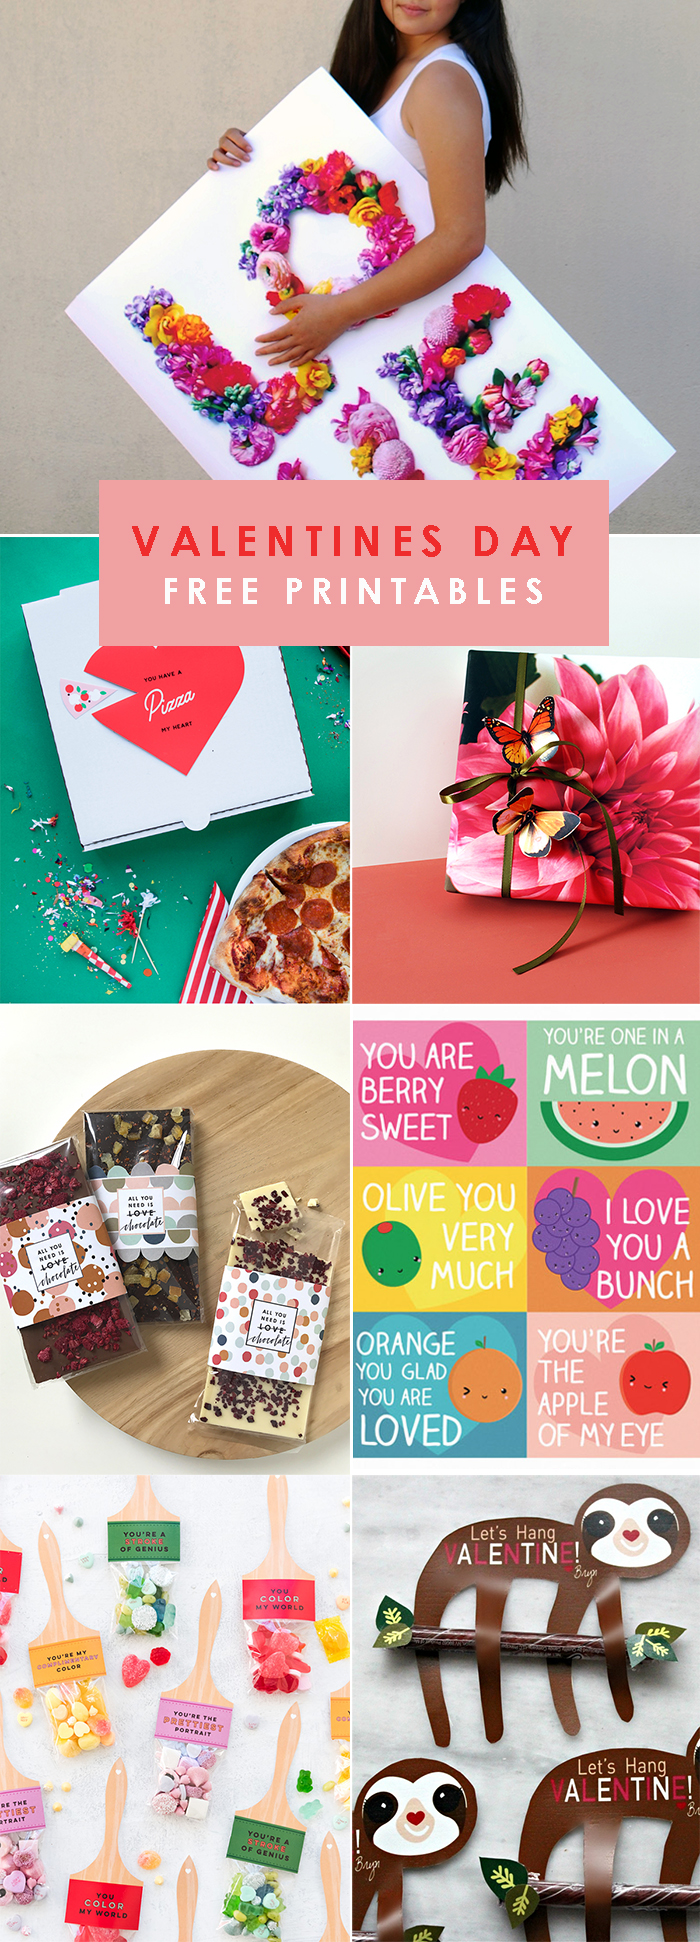 The best Valentines Day free printables